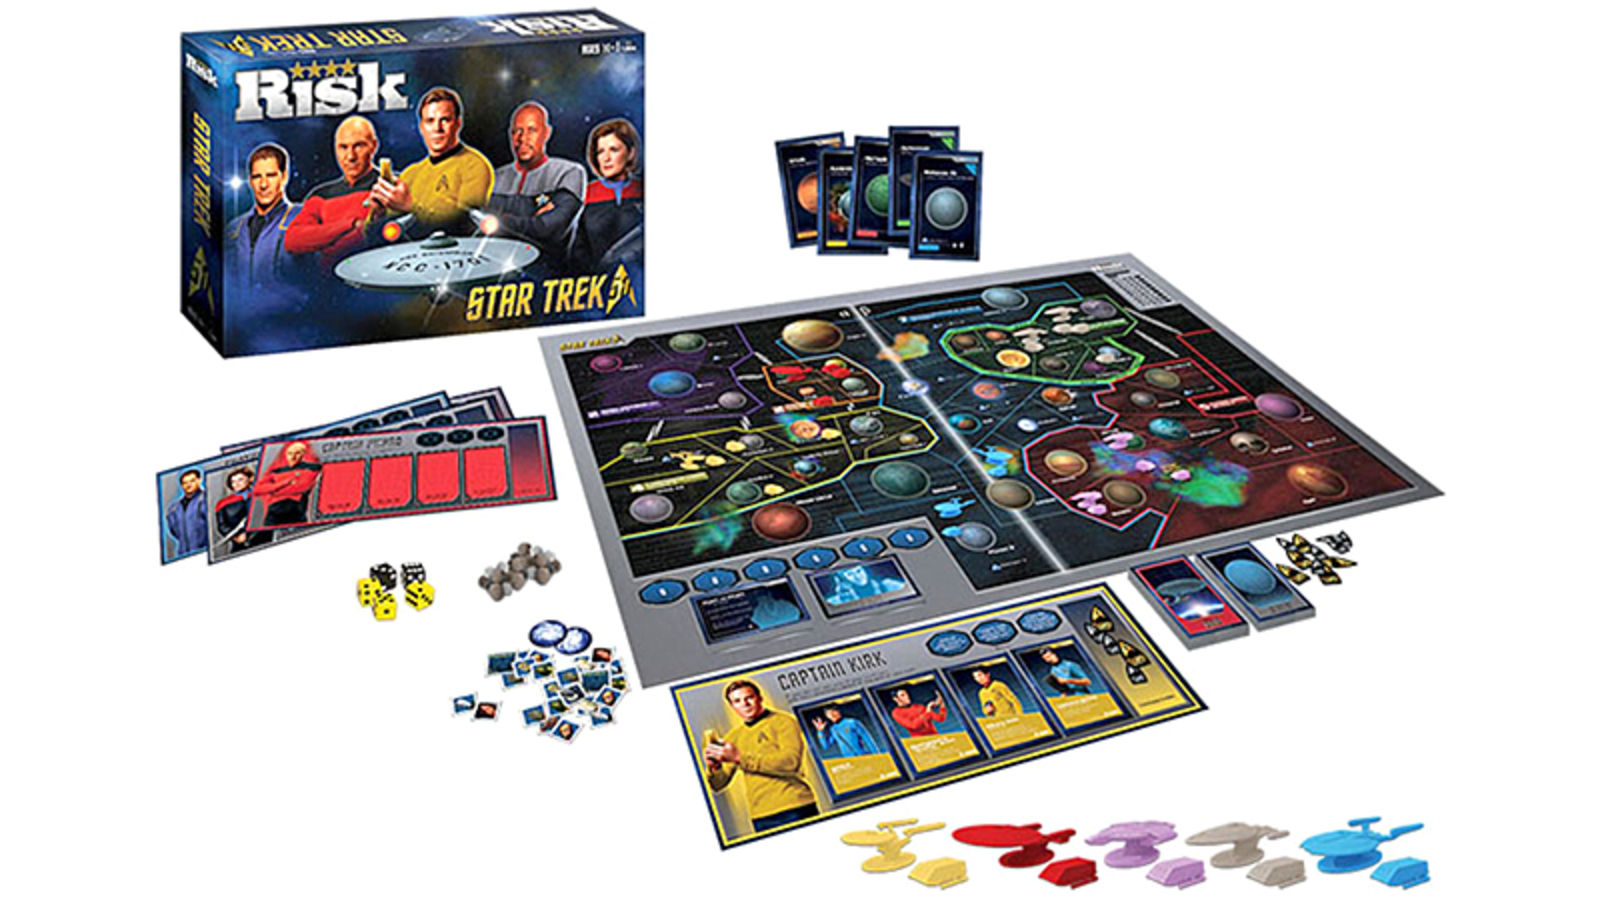 Star Trek Risk: Captain vs. Captain